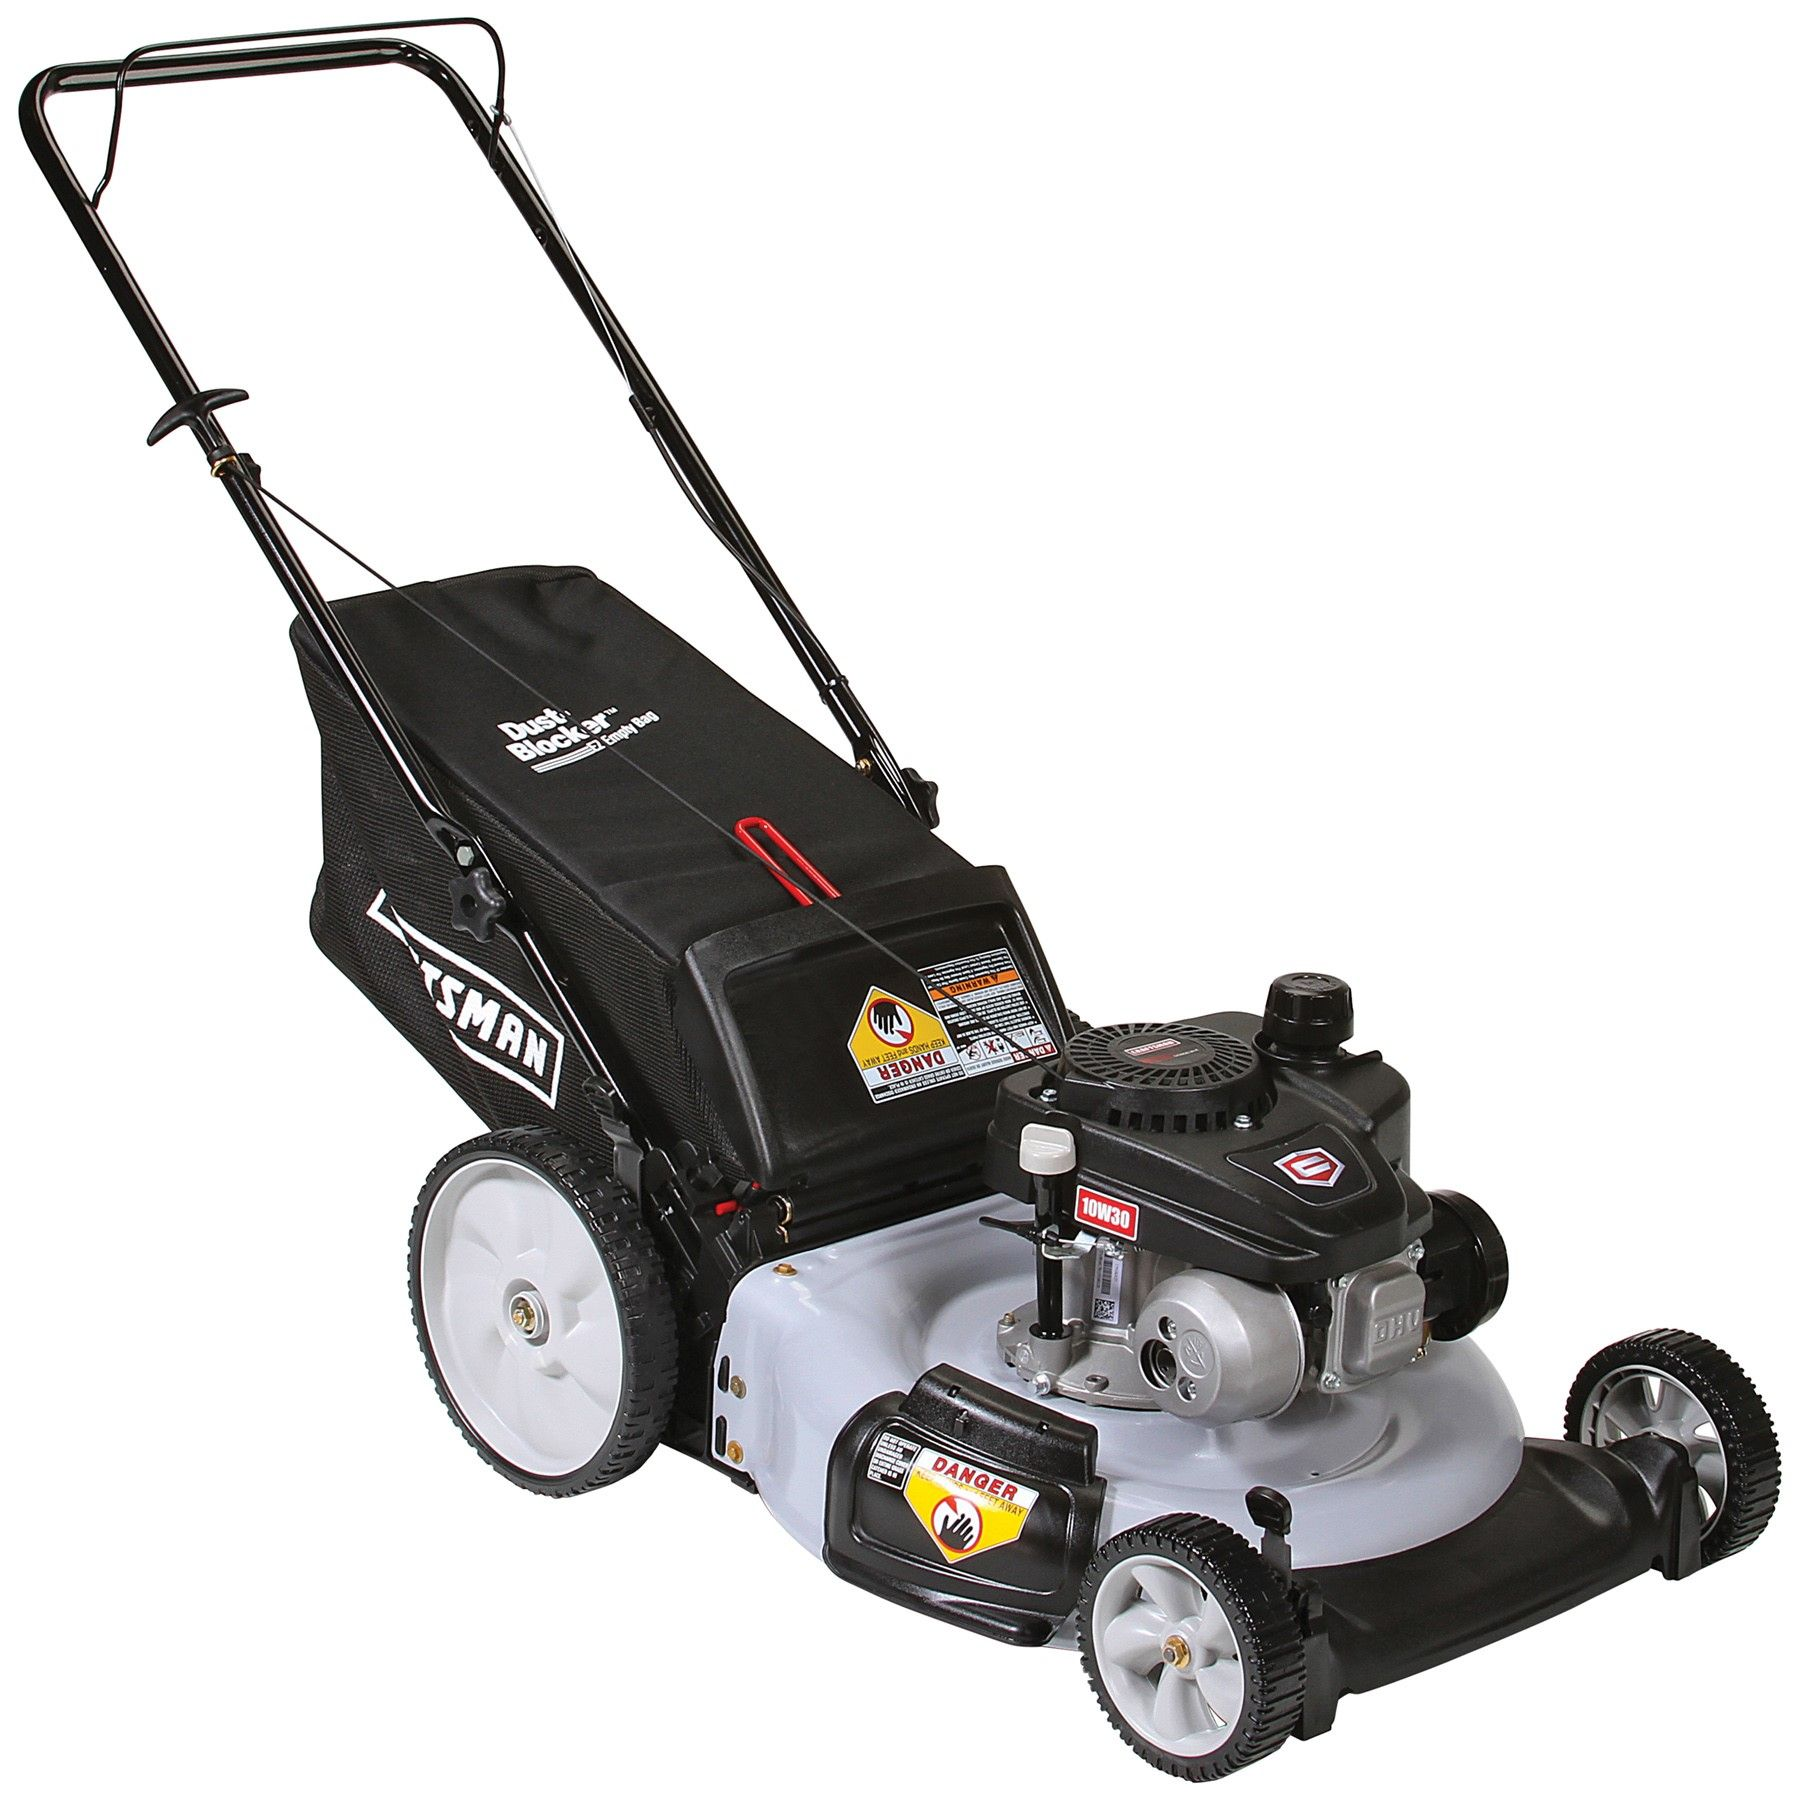 Craftsman 37460 21 140cc Push Mower With High Rear Wheels Lawn Mower Push Lawn Mower Push Mower